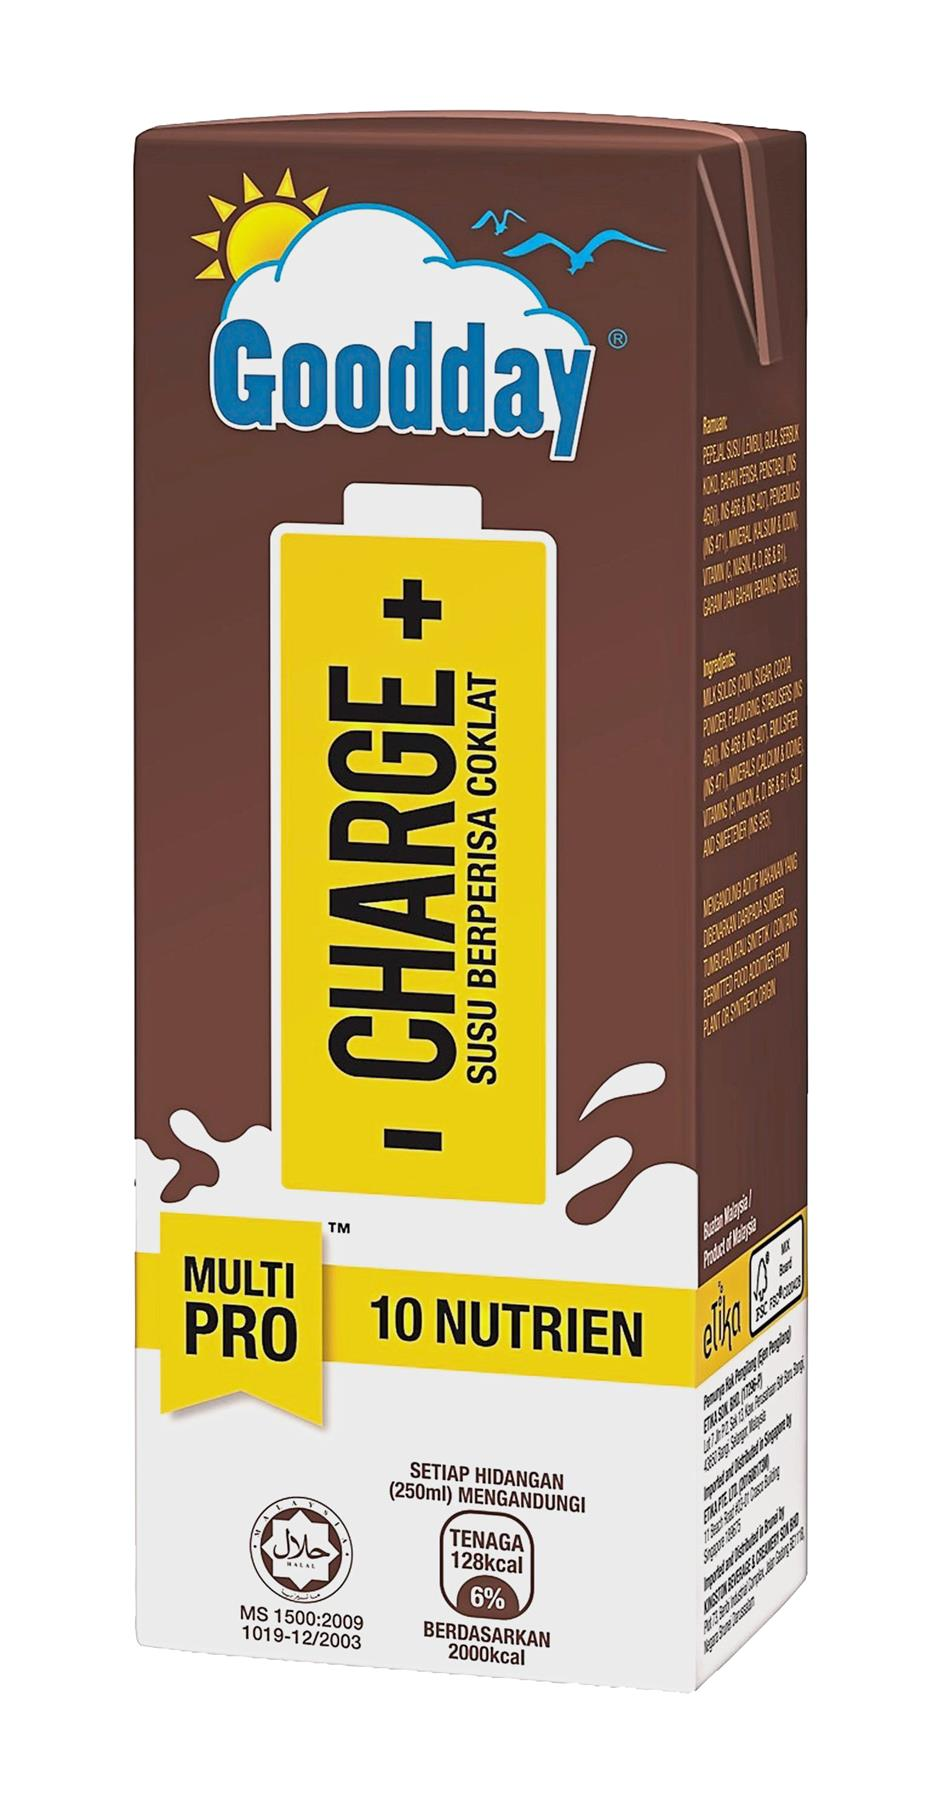 Goodday Milk has come up with Goodday Charge, a chocolate milk drink fortified with as many as 10 nutrients